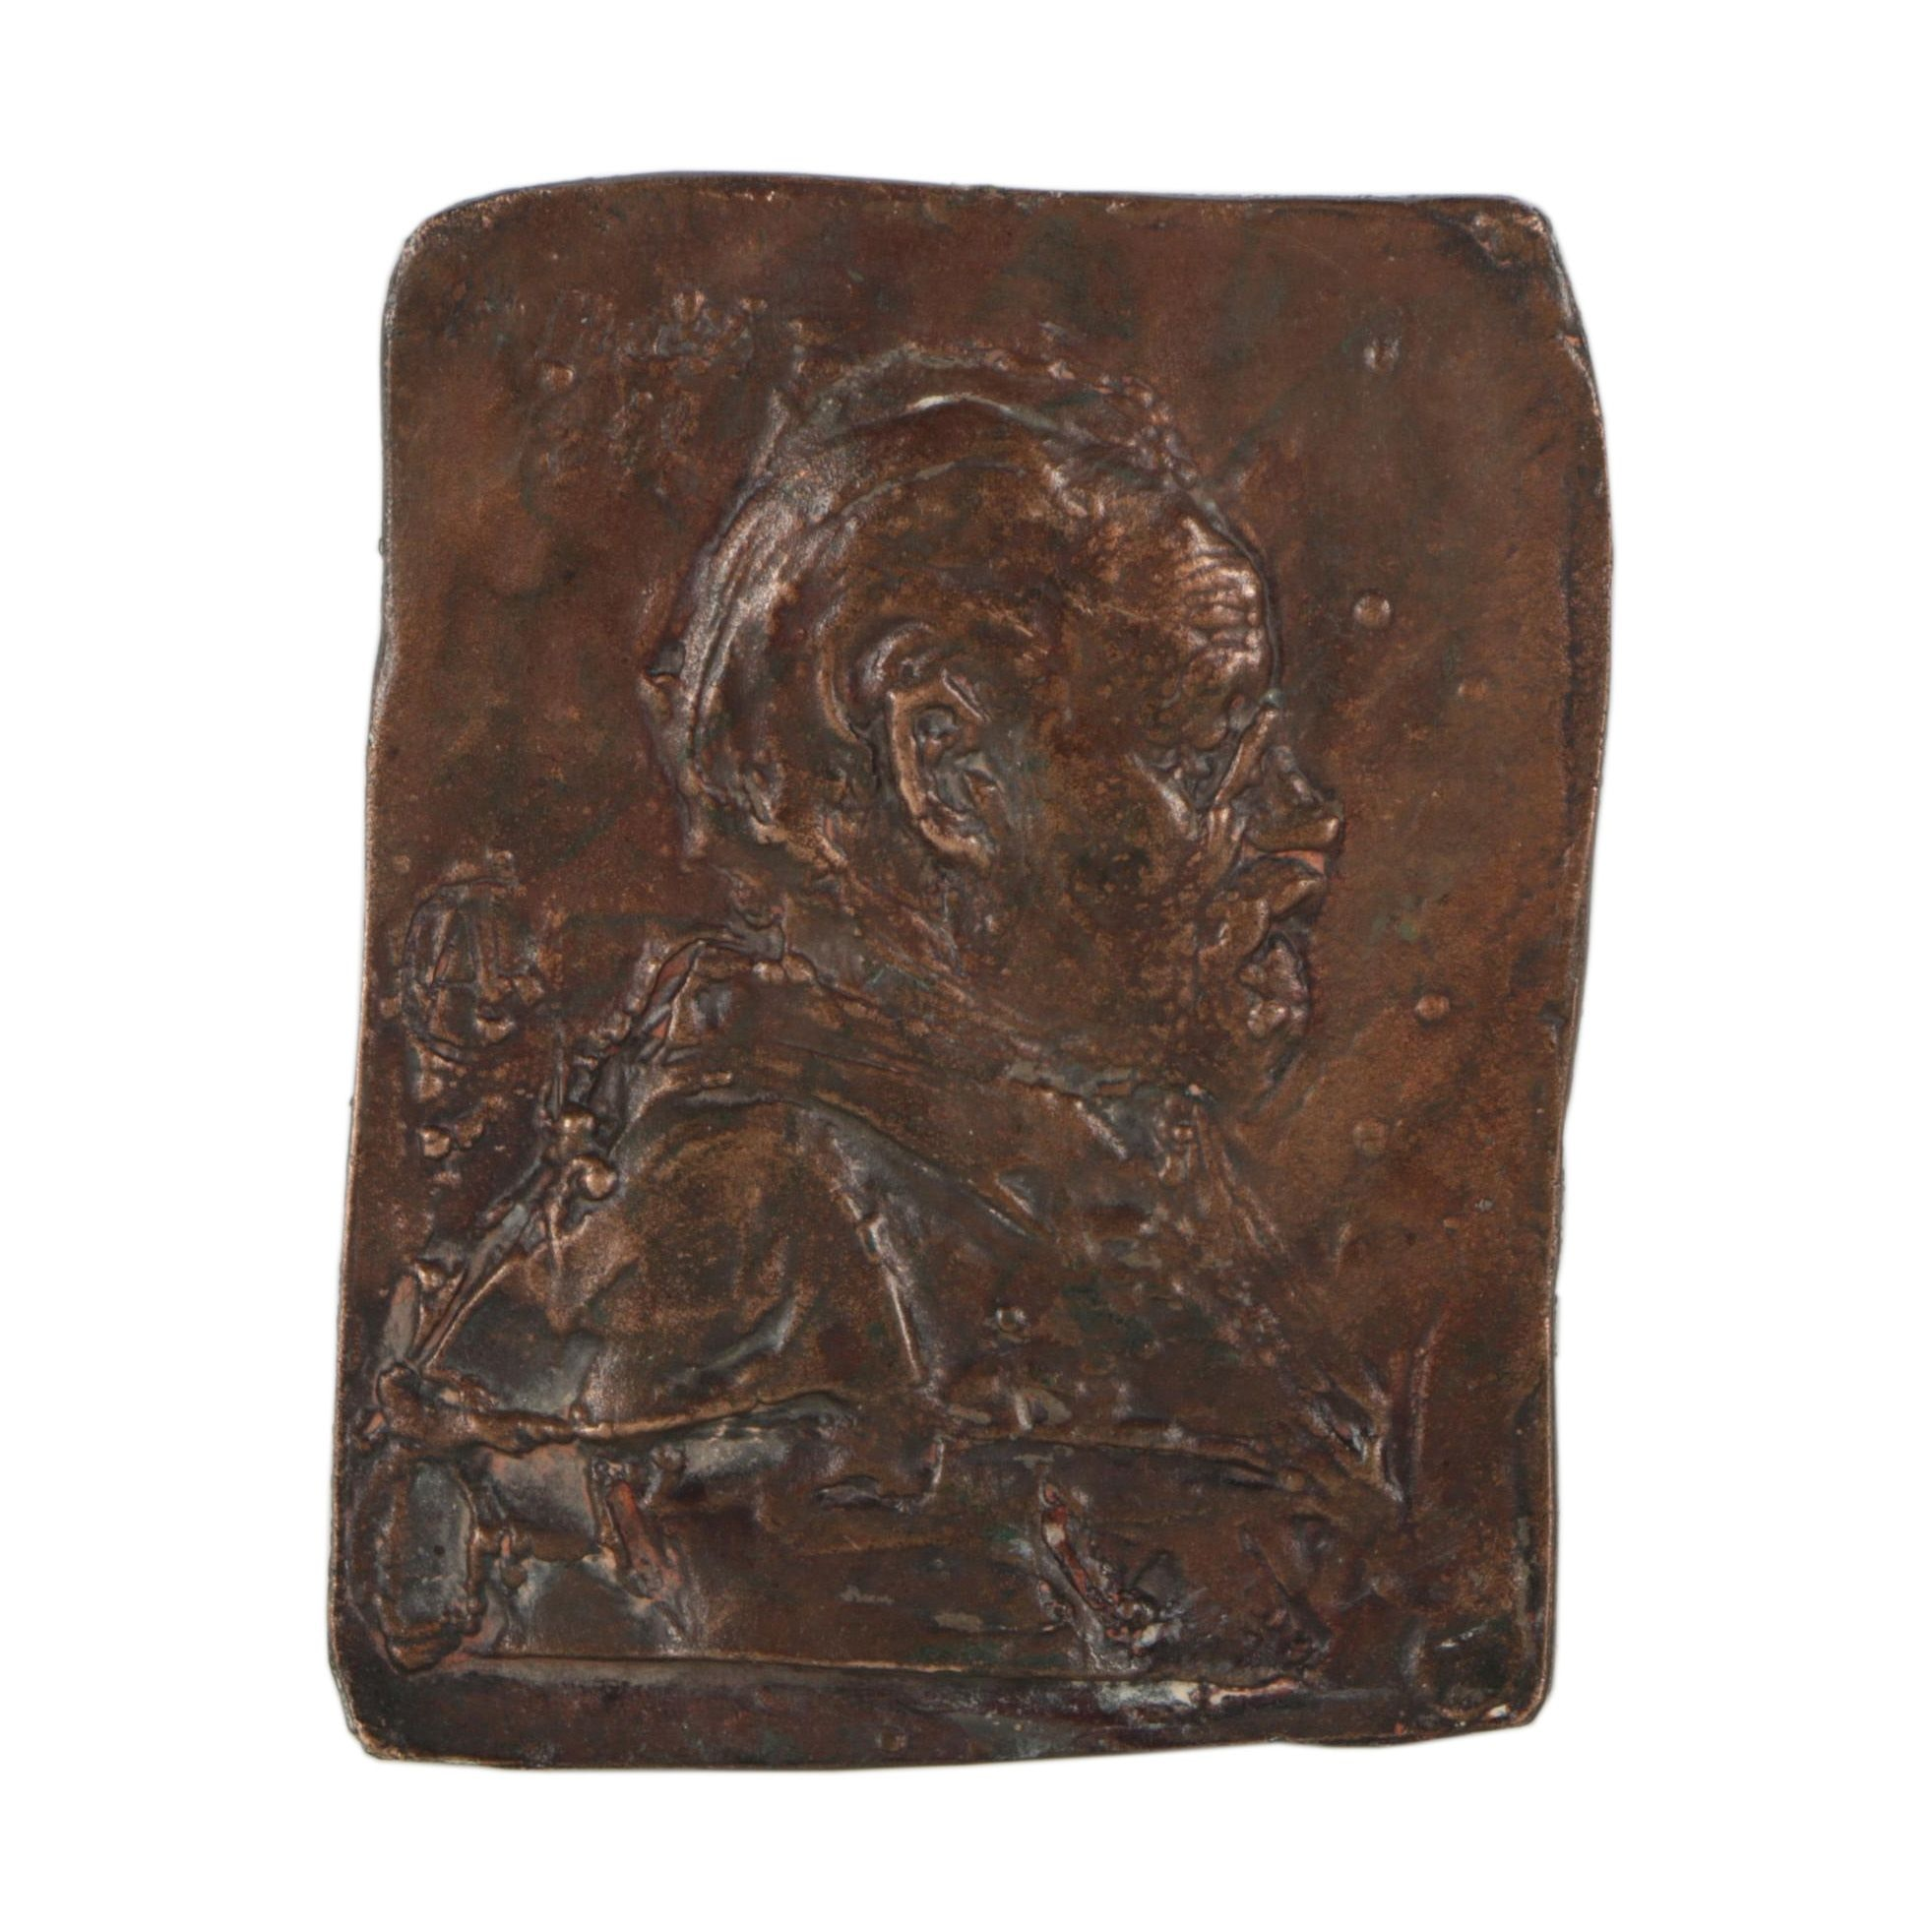 Copper Plaque with Relief Portrait in Side Profile